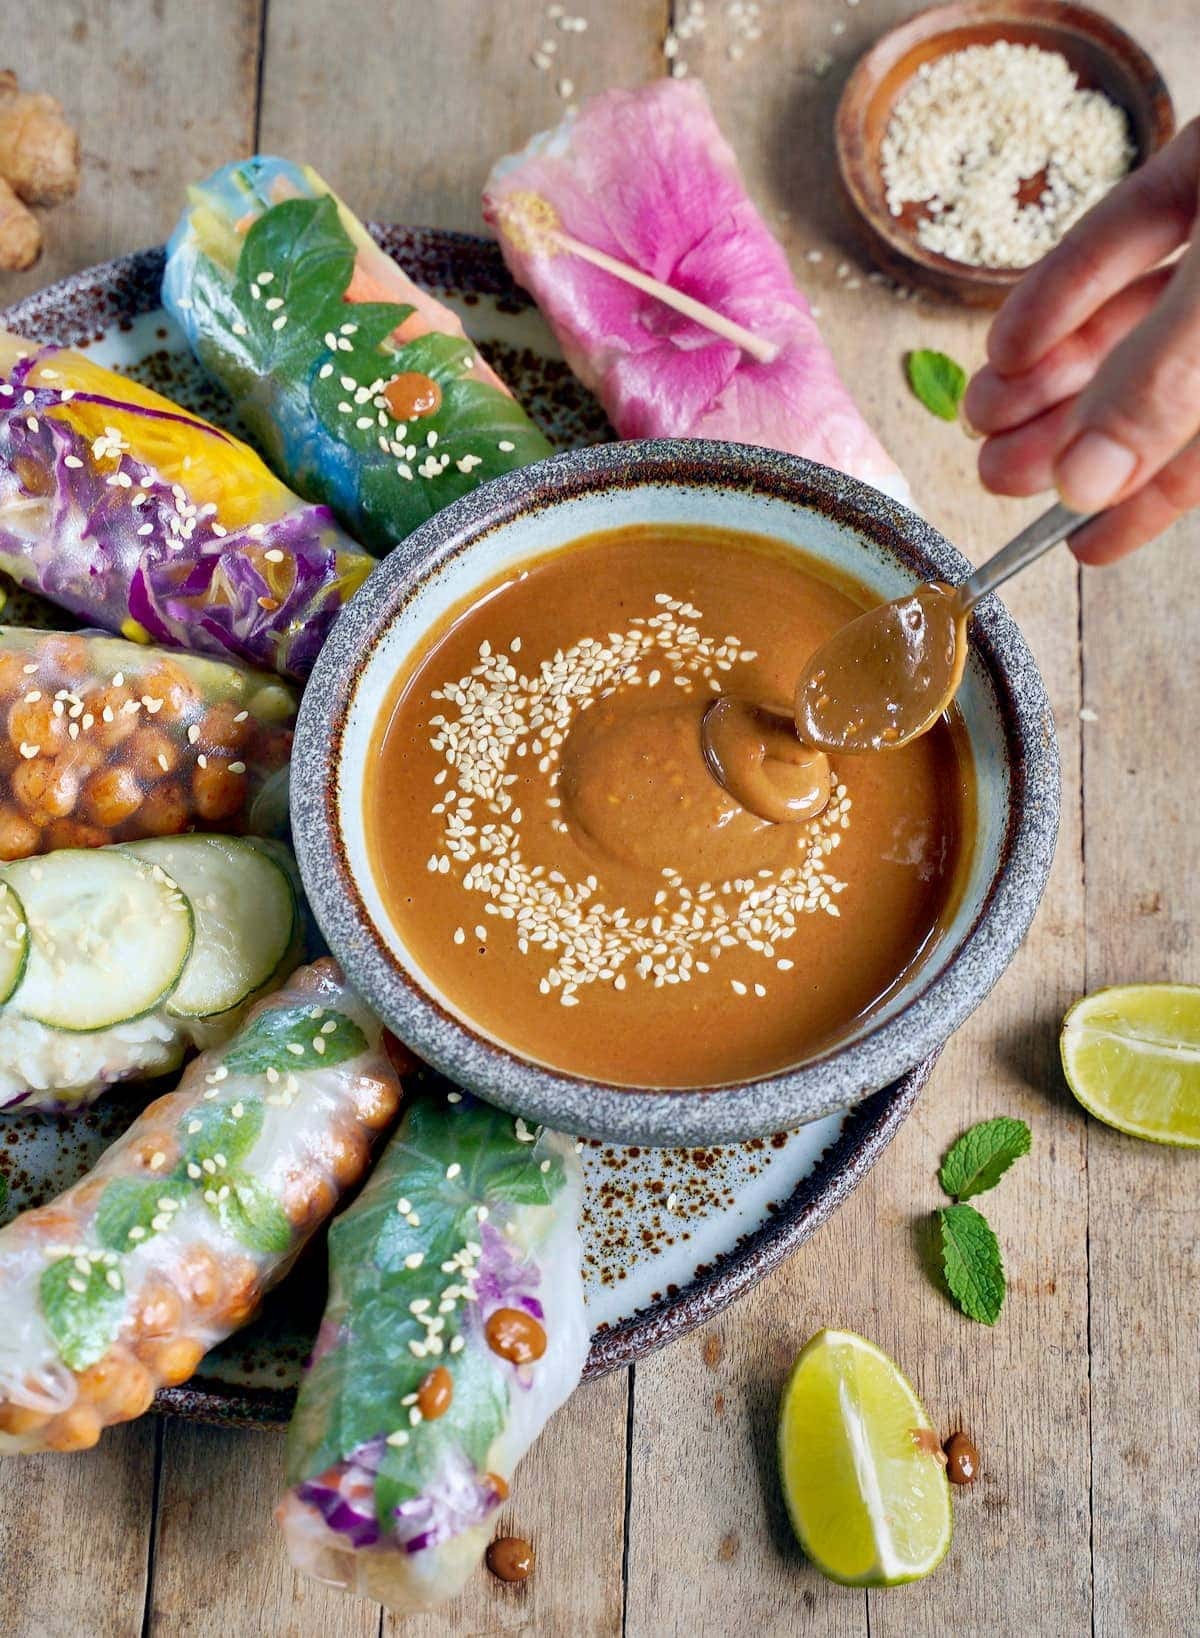 summer rolls with PB dip and spoon